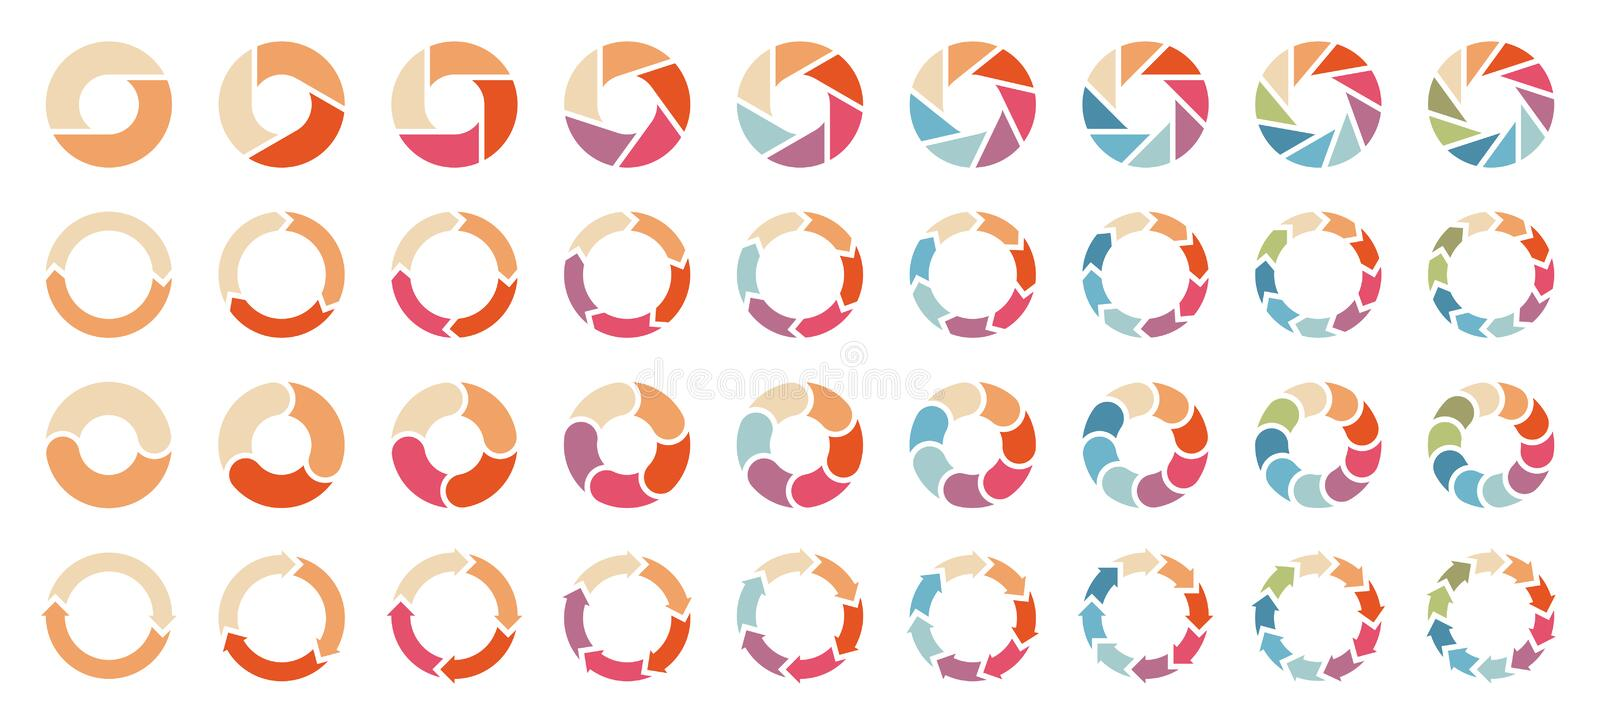 Set Of Different Pie Charts With Arrows Retro Colors royalty free illustration